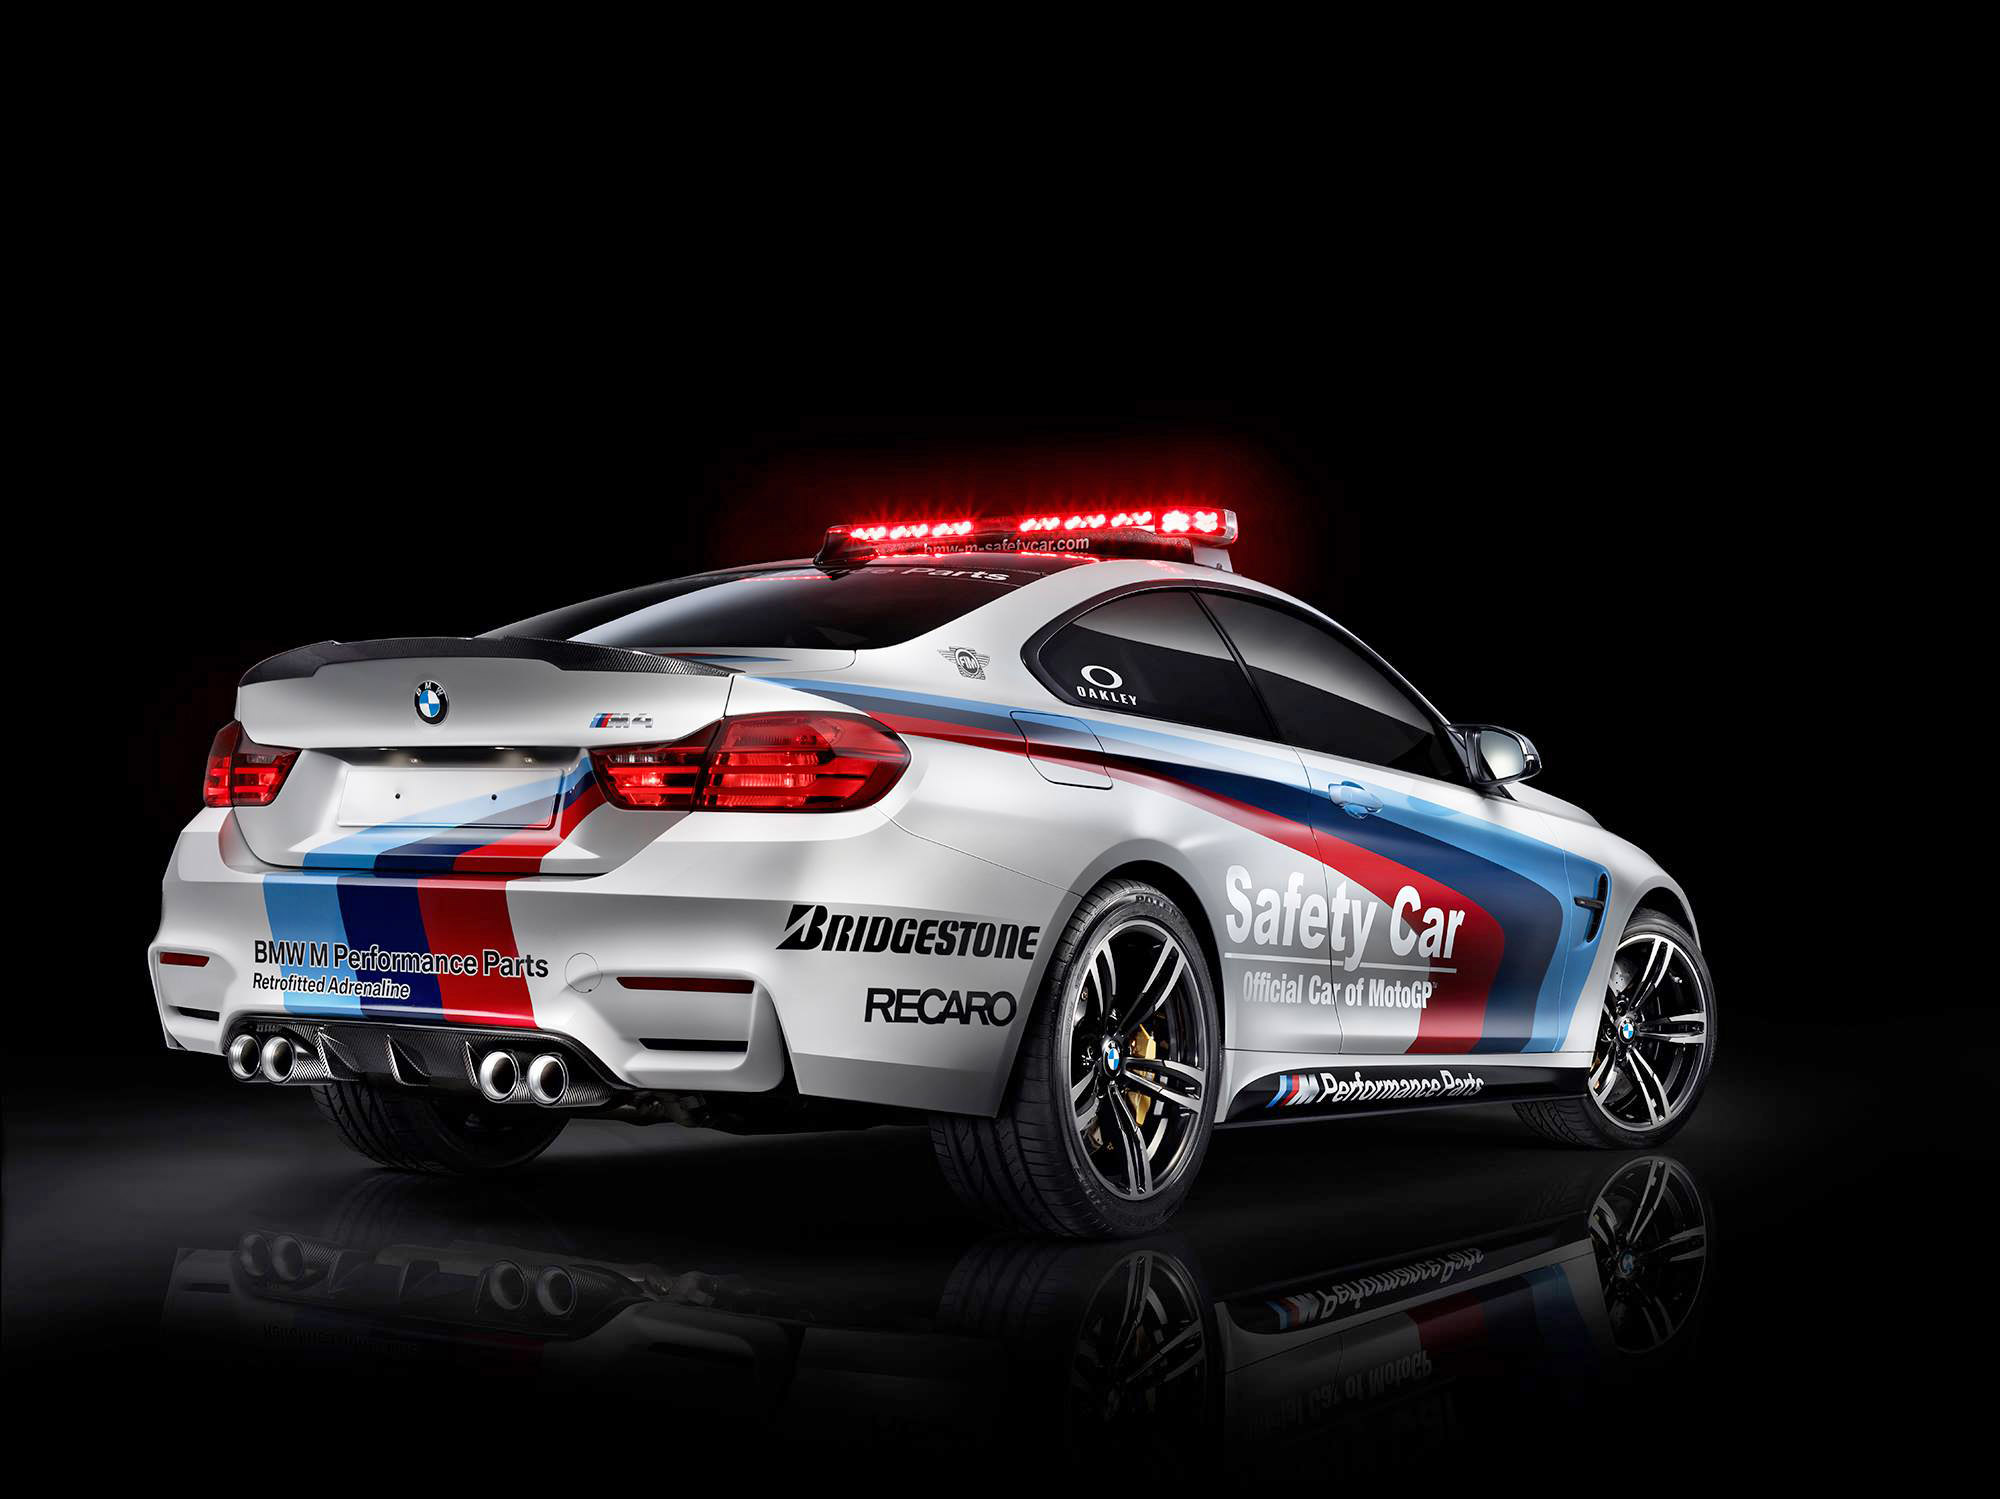 BMW M4 MotoGP Safety Car Unveiled, Previewing M4 M